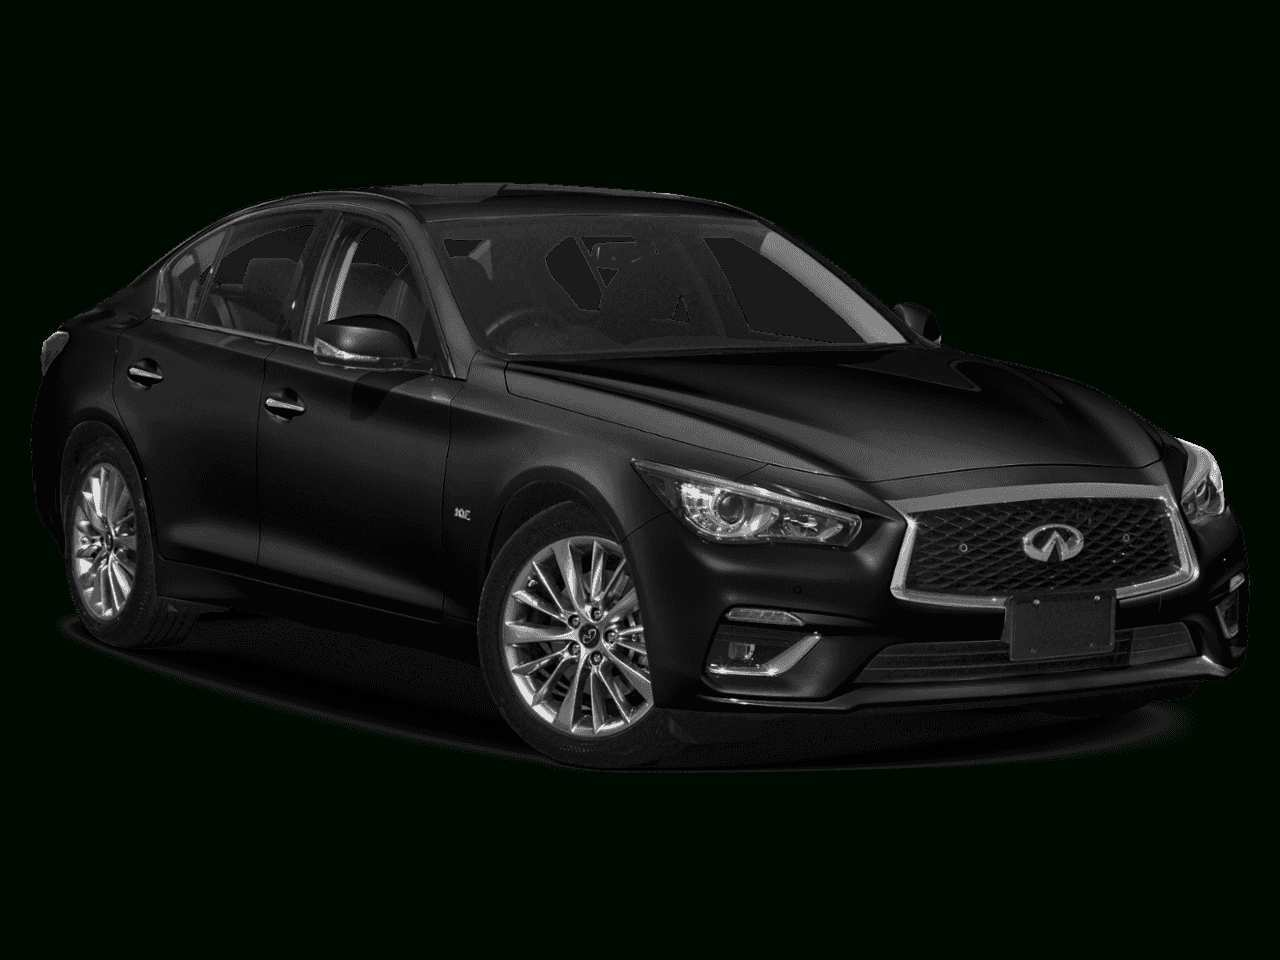 97 All New 2019 Infiniti Commercial Redesign